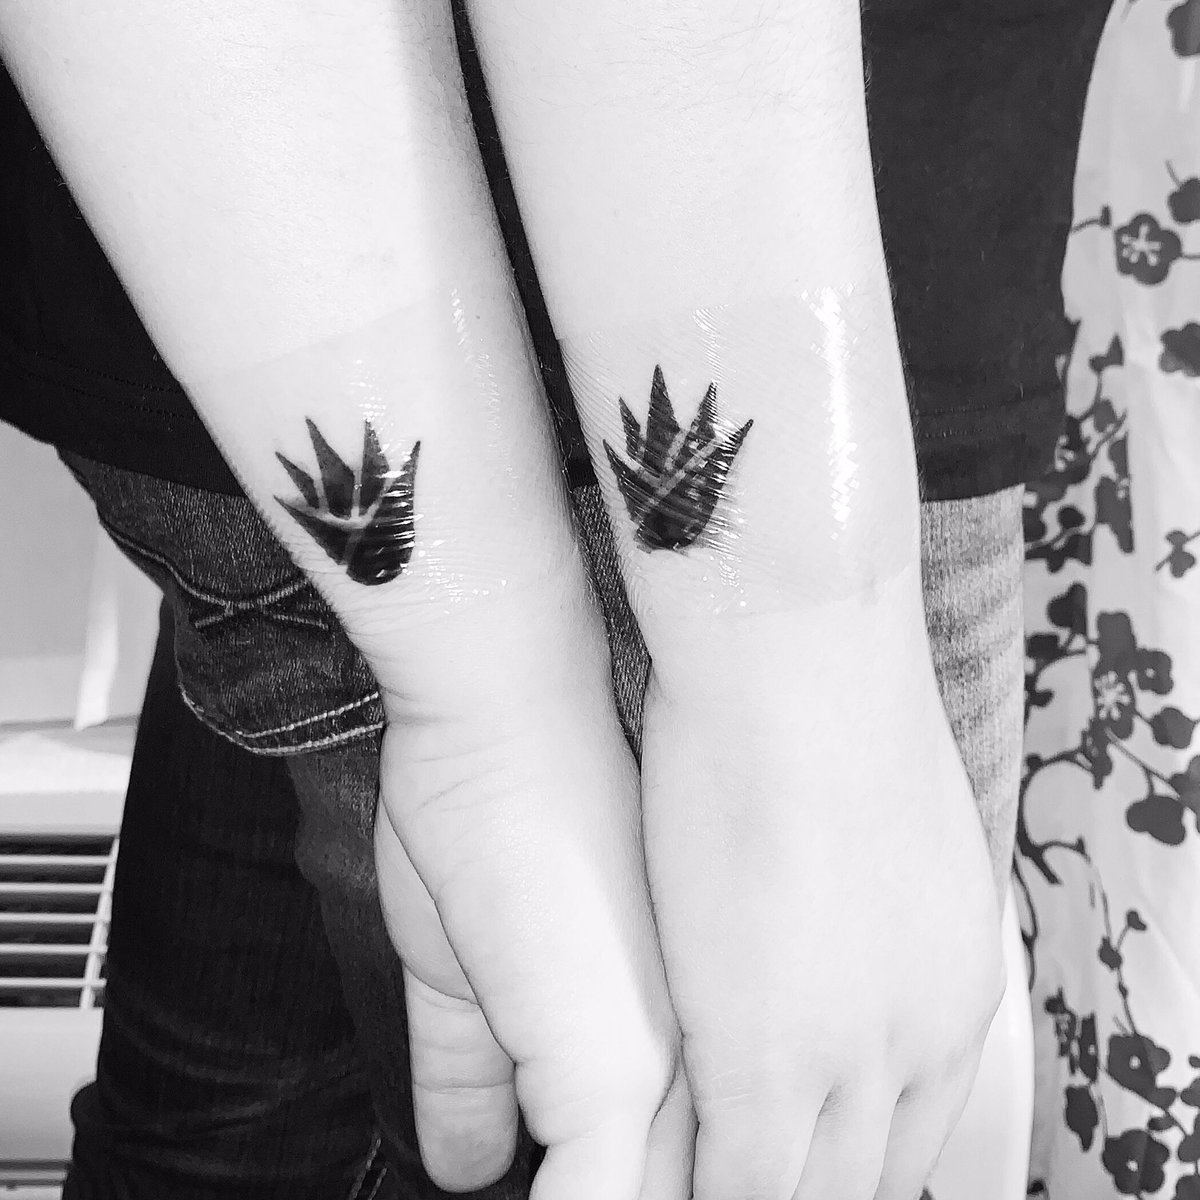 """""""When I taste tequila""""- @danandshay We got friendship tattoos last tonight and we seriously couldn't have picked a better tattoo to symbolize our friendship. I love these girls to death and now we are stamped for life. @dansmyers @ShayMooney @JalenaPerez"""